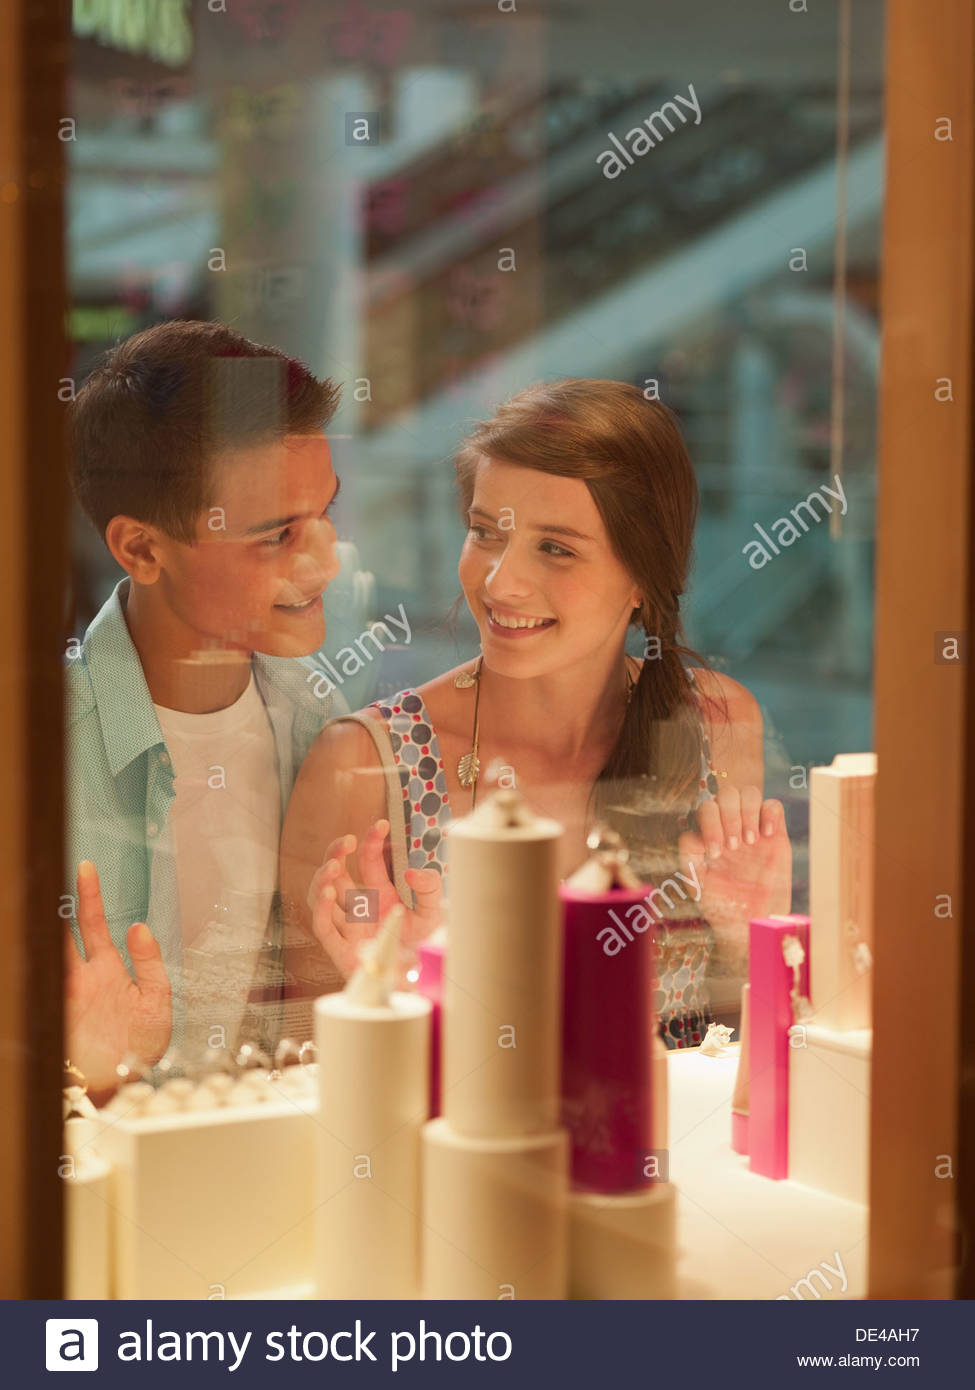 Smiling couple looking at jewelry in display case Stock Photo